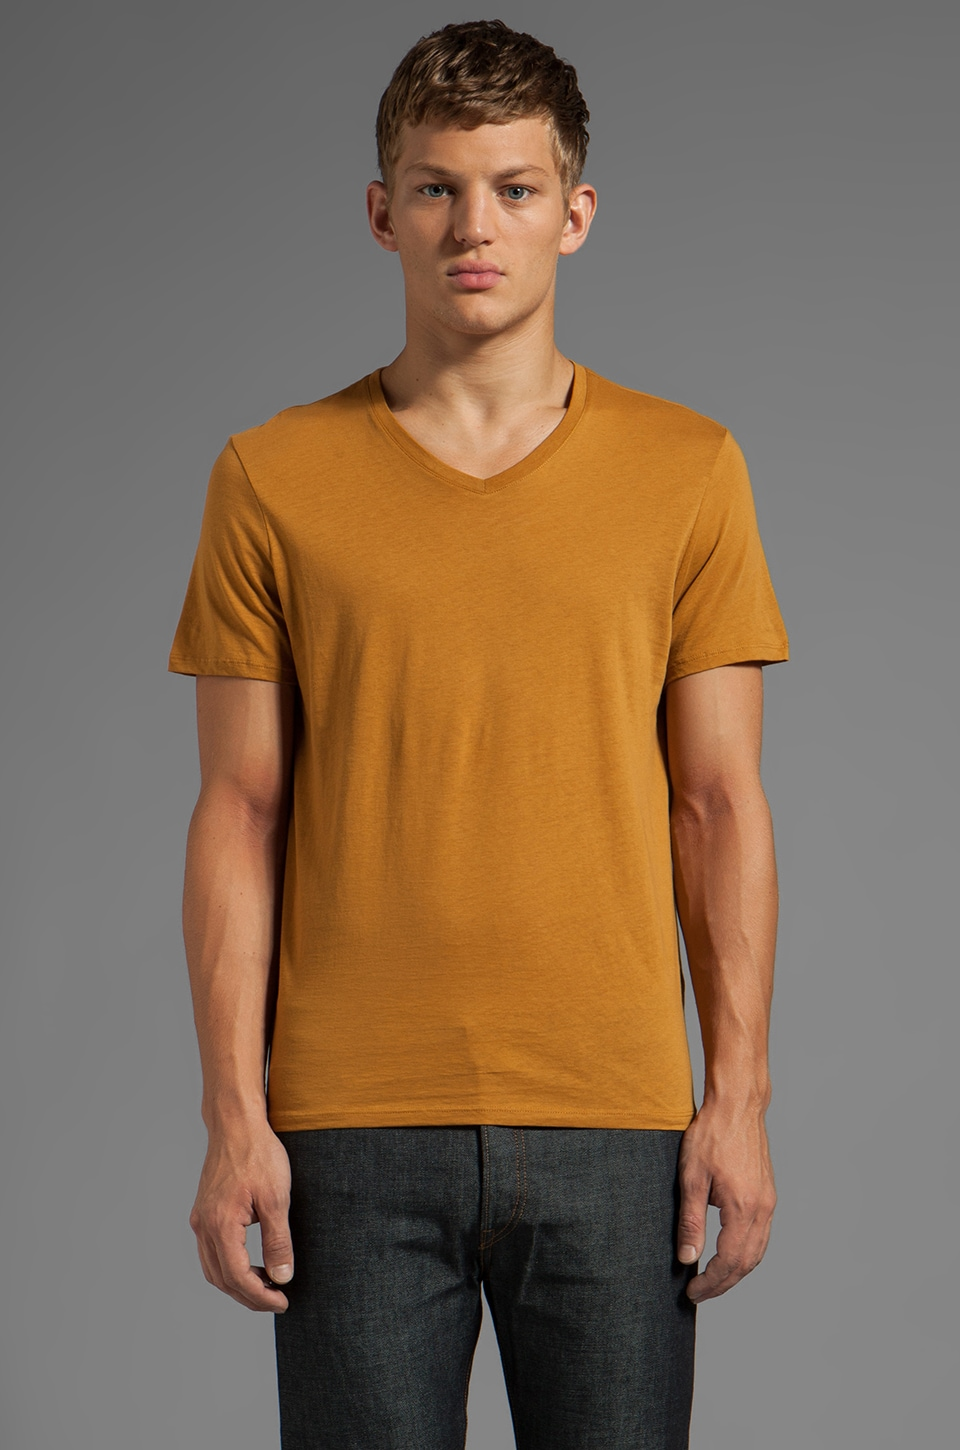 Vince Favorite Jersey V-Neck in Antique Brass